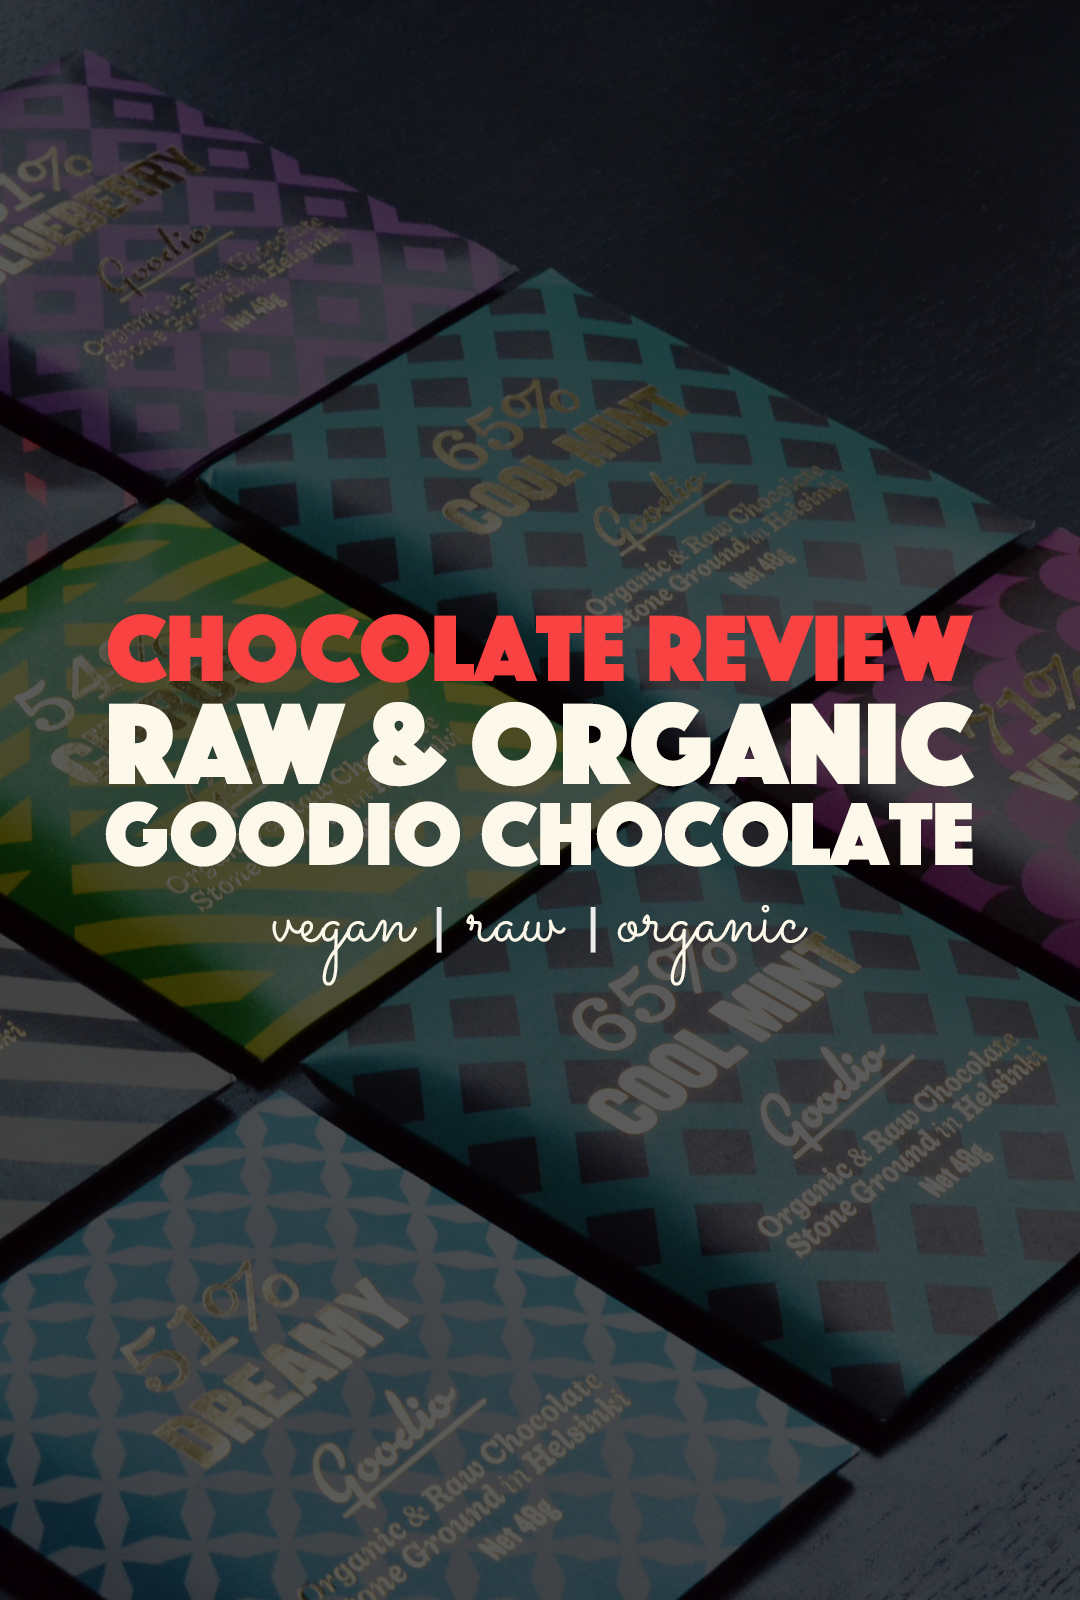 Goodio Raw & Organic Chocolate Review | http://BananaBloom.com #rawfood #rawchocolate #goodio